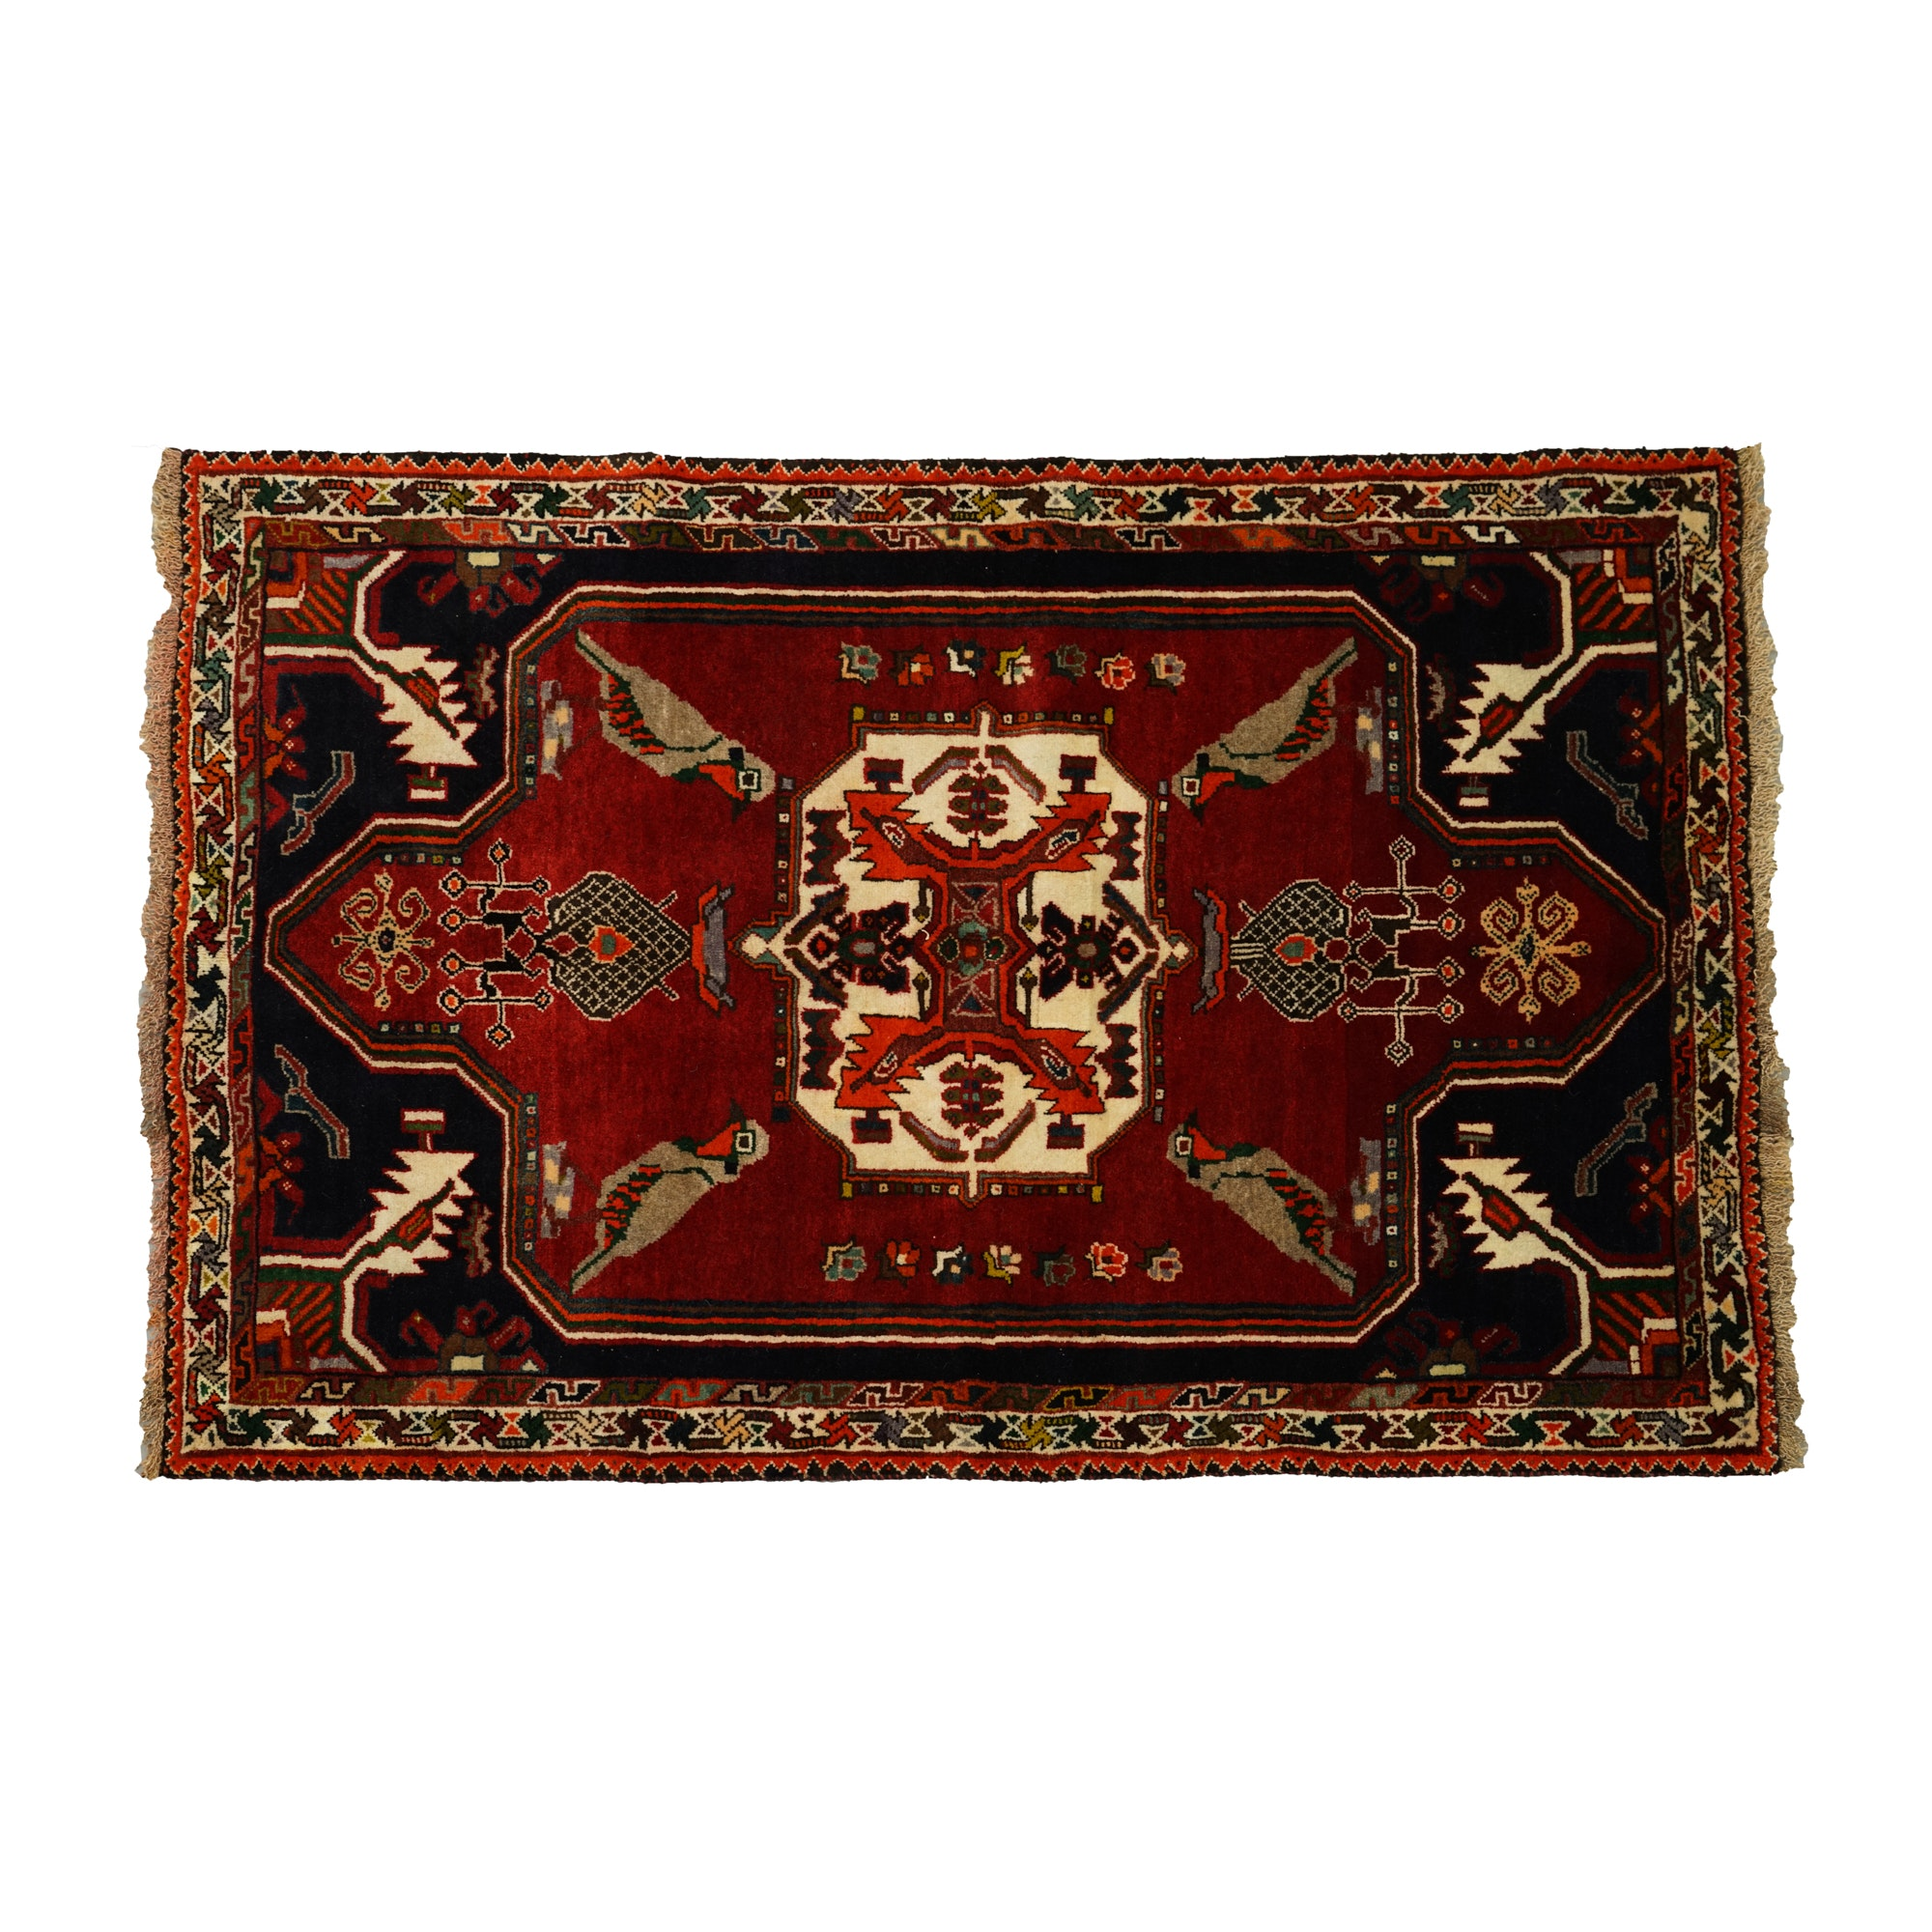 Hand-Knotted Southwest Persian Pictorial Wool Area Rug